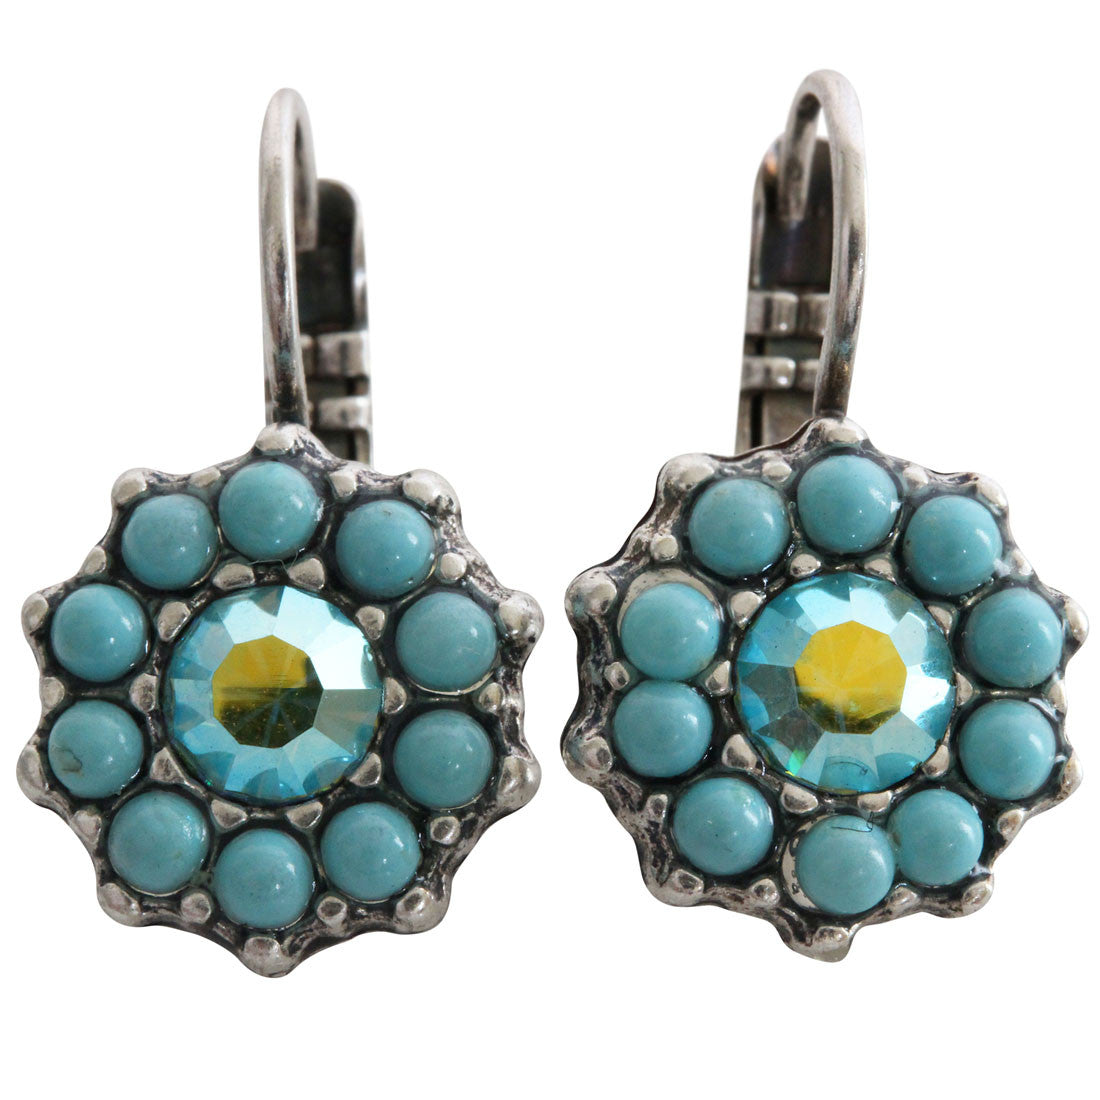 Mariana Silver Plated Daisy Swarovski Crystal Earrings, Summer Fun 1157 3711